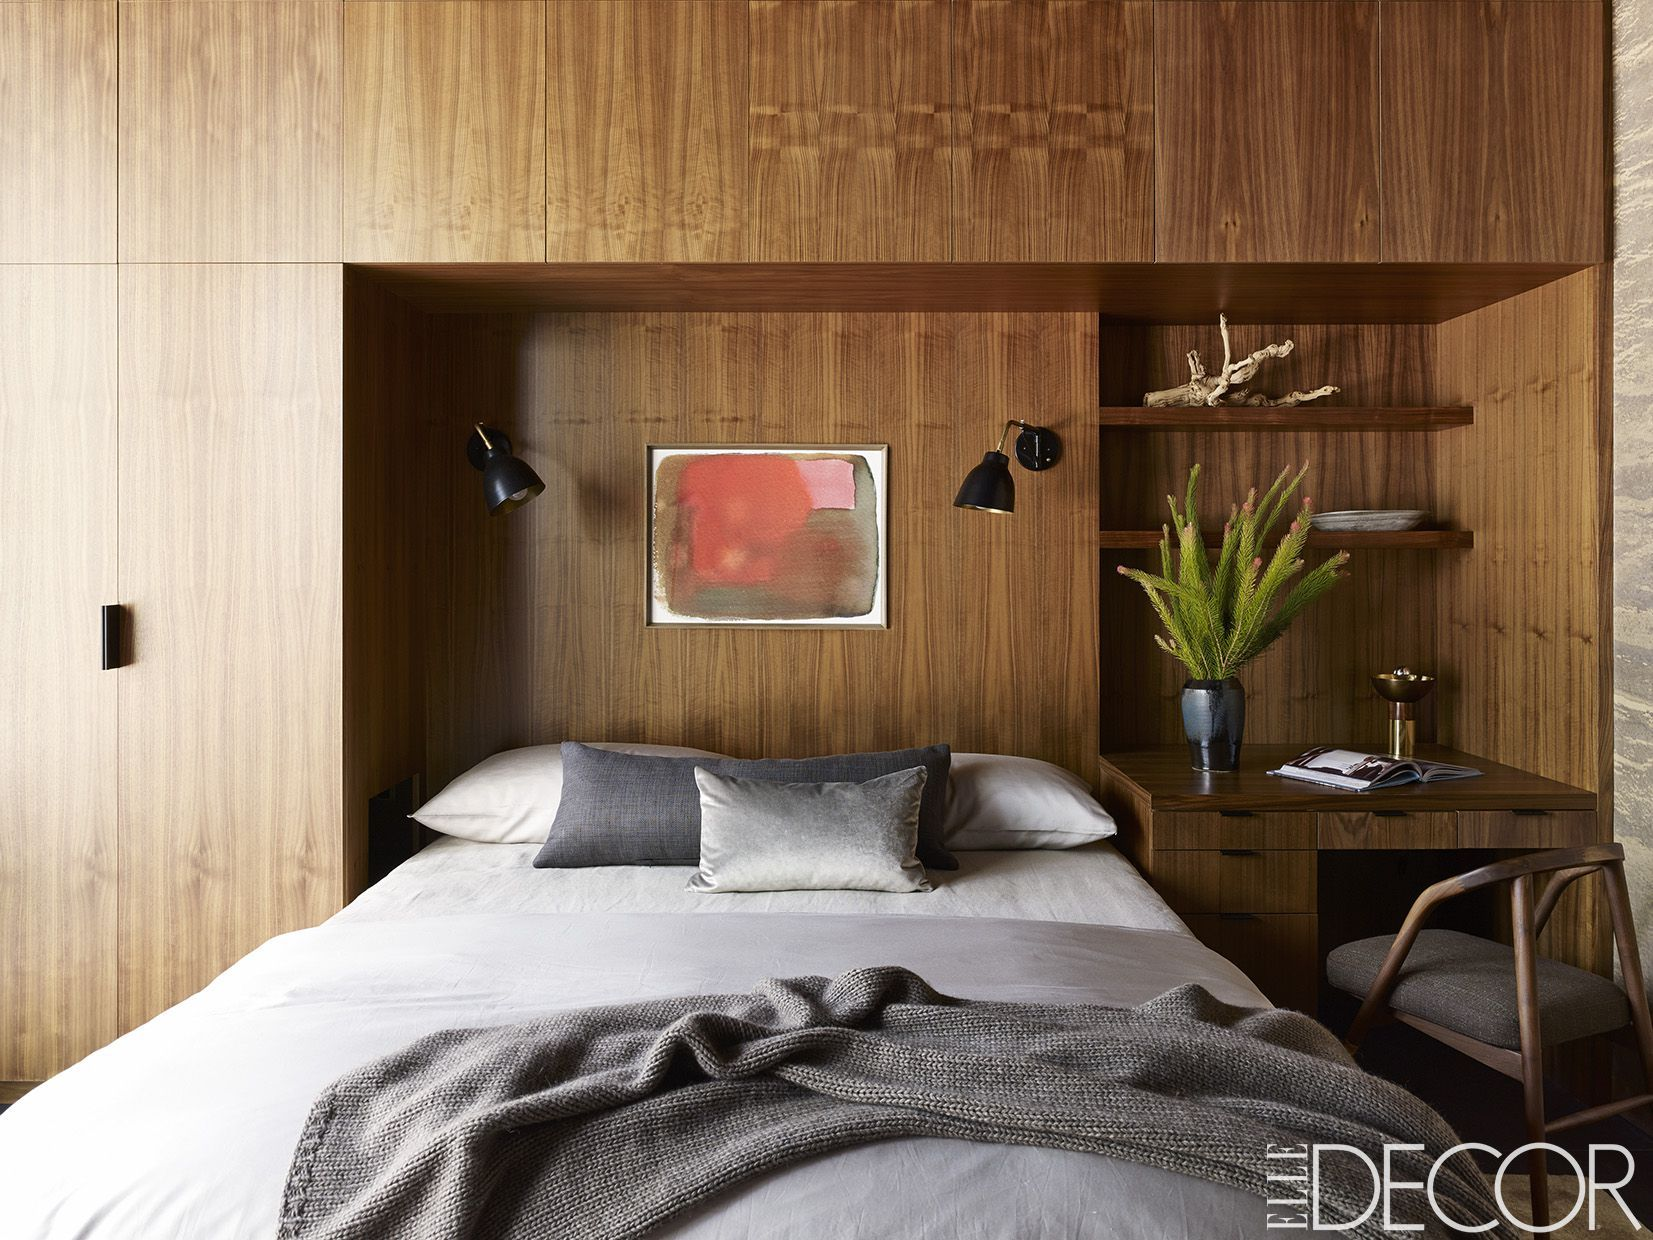 8 Small Bedroom Design Ideas - Decorating Tips for Small Bedrooms